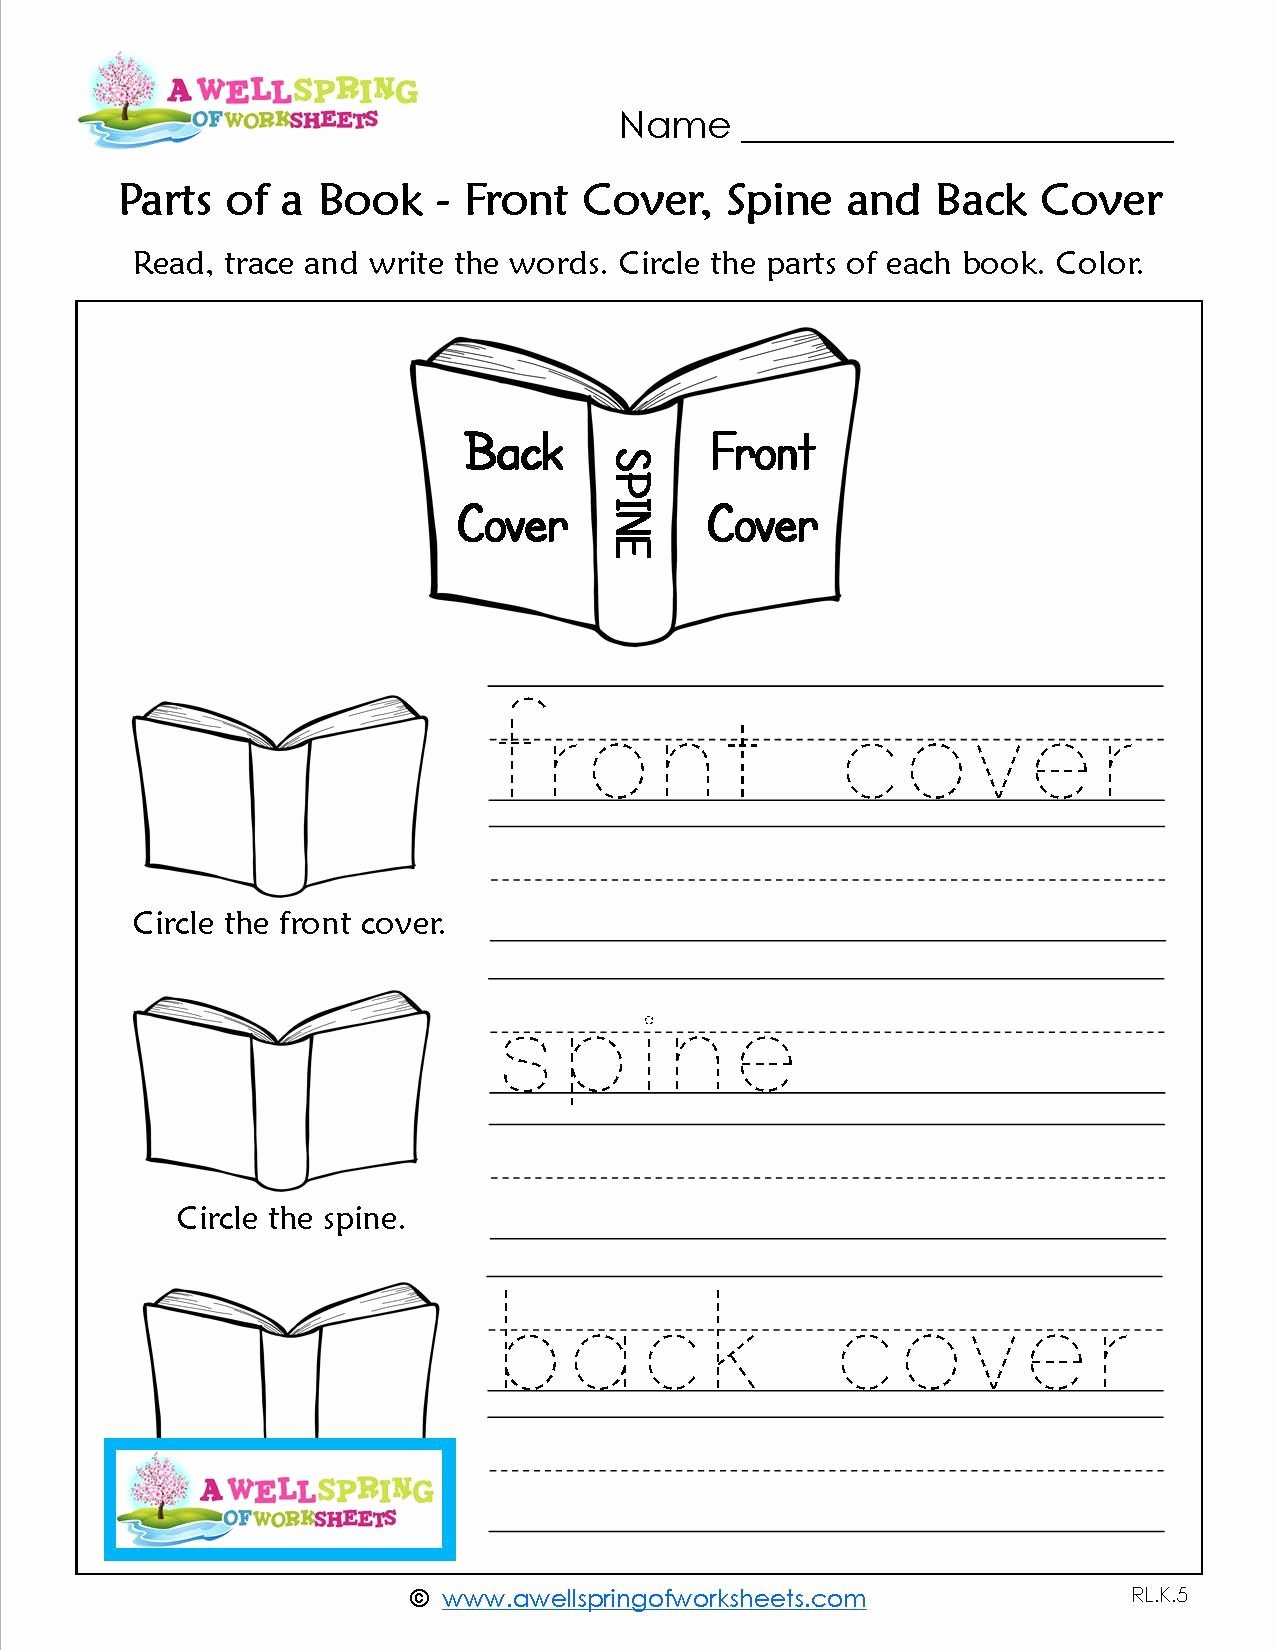 Parts Of A Book Worksheet Inspirational Worksheets by Subject A Wellspring Of Worksheets